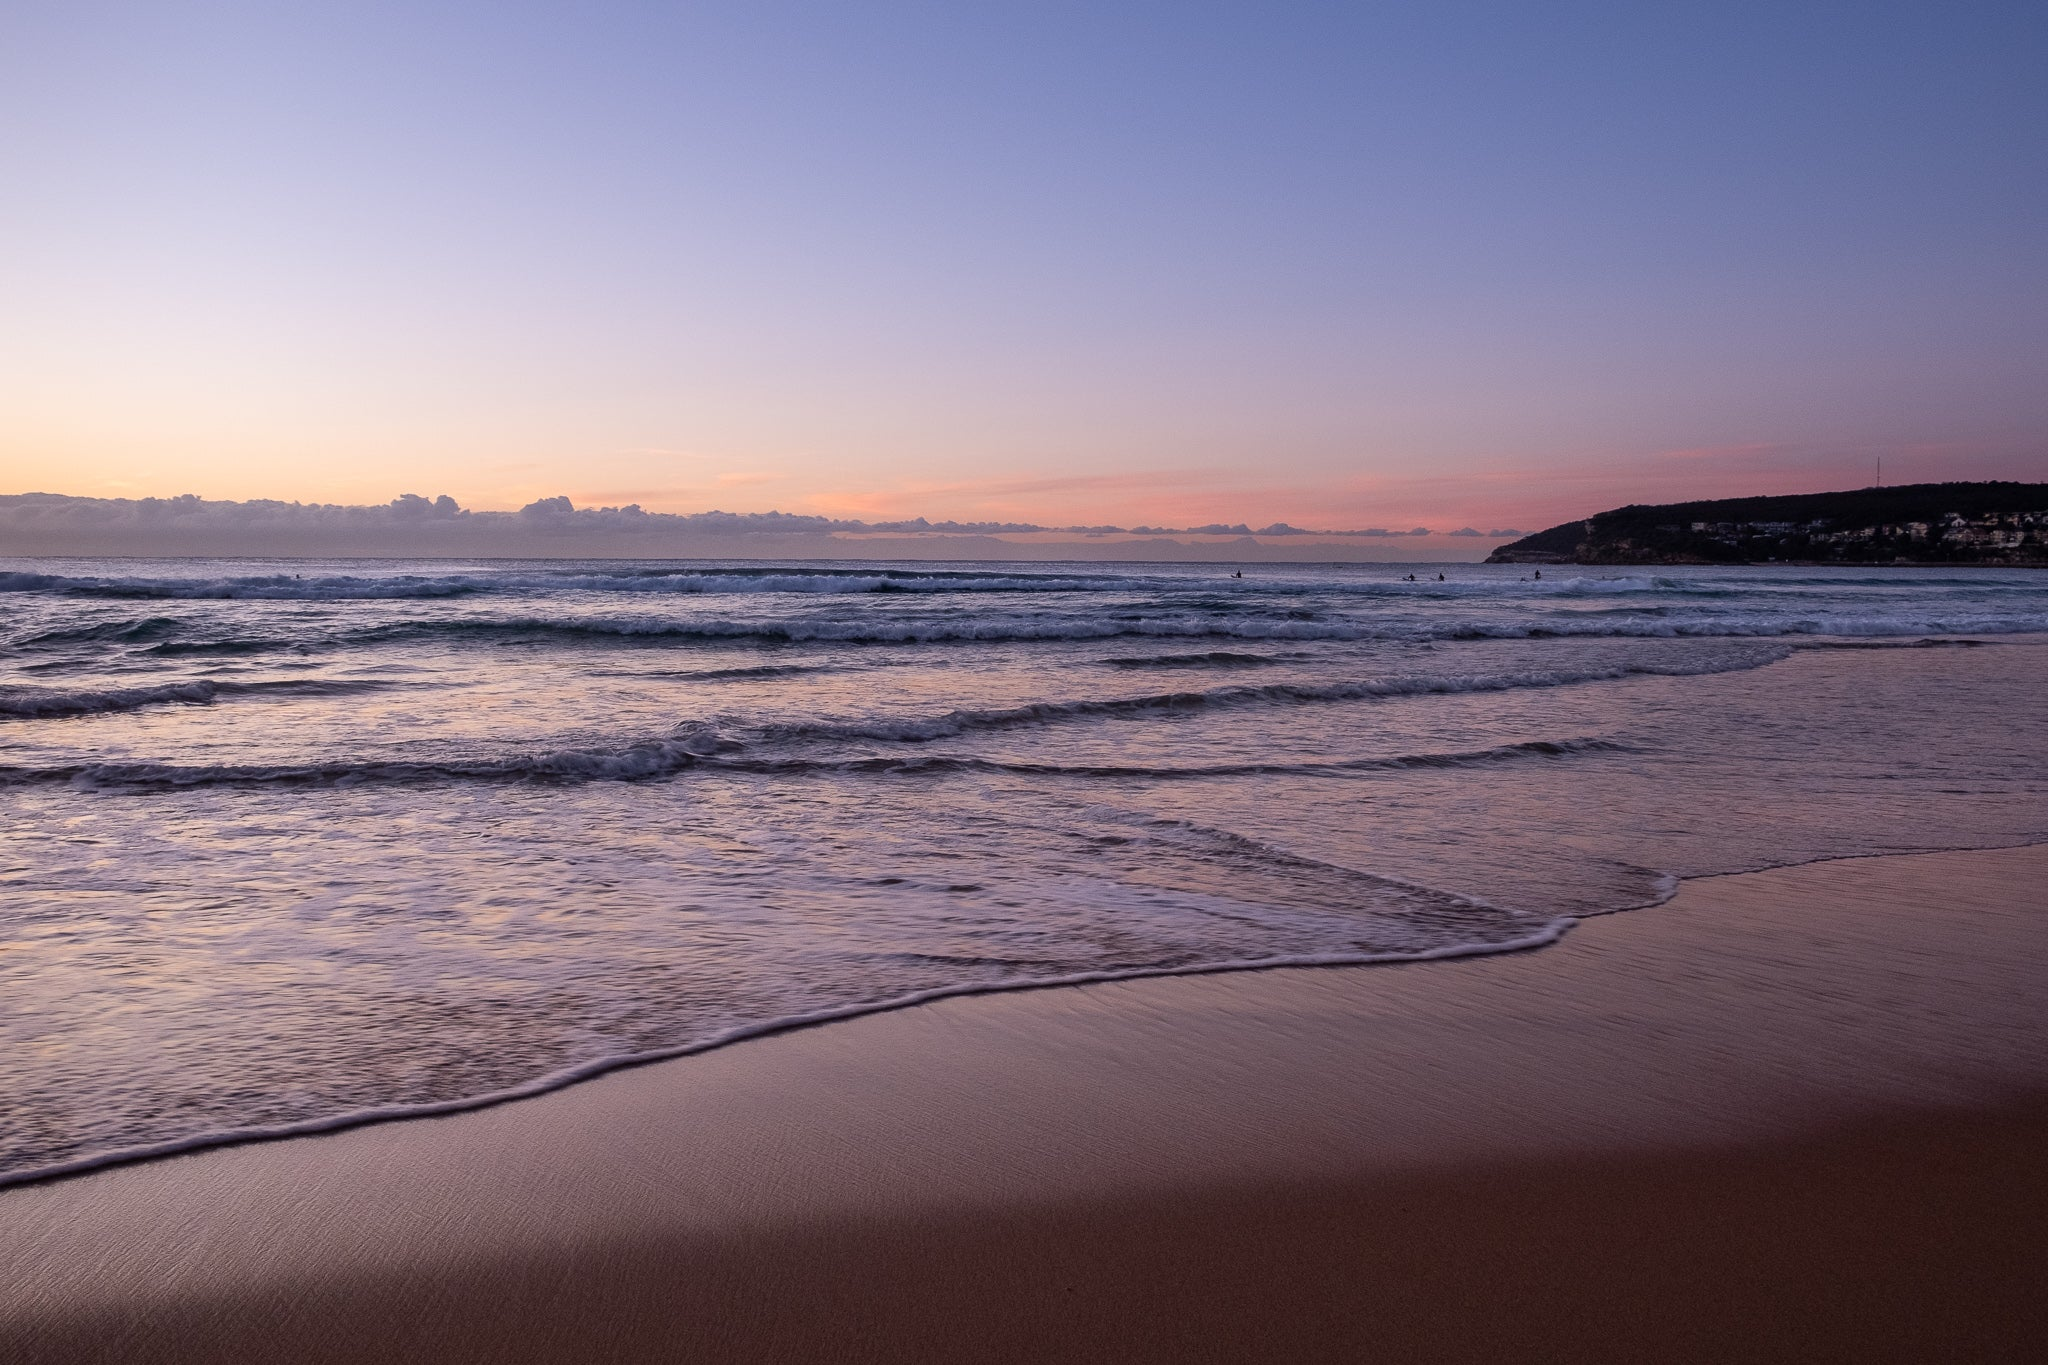 Sunrise photo from the 25th July 2019 at Queenscliff Beach in Sydney